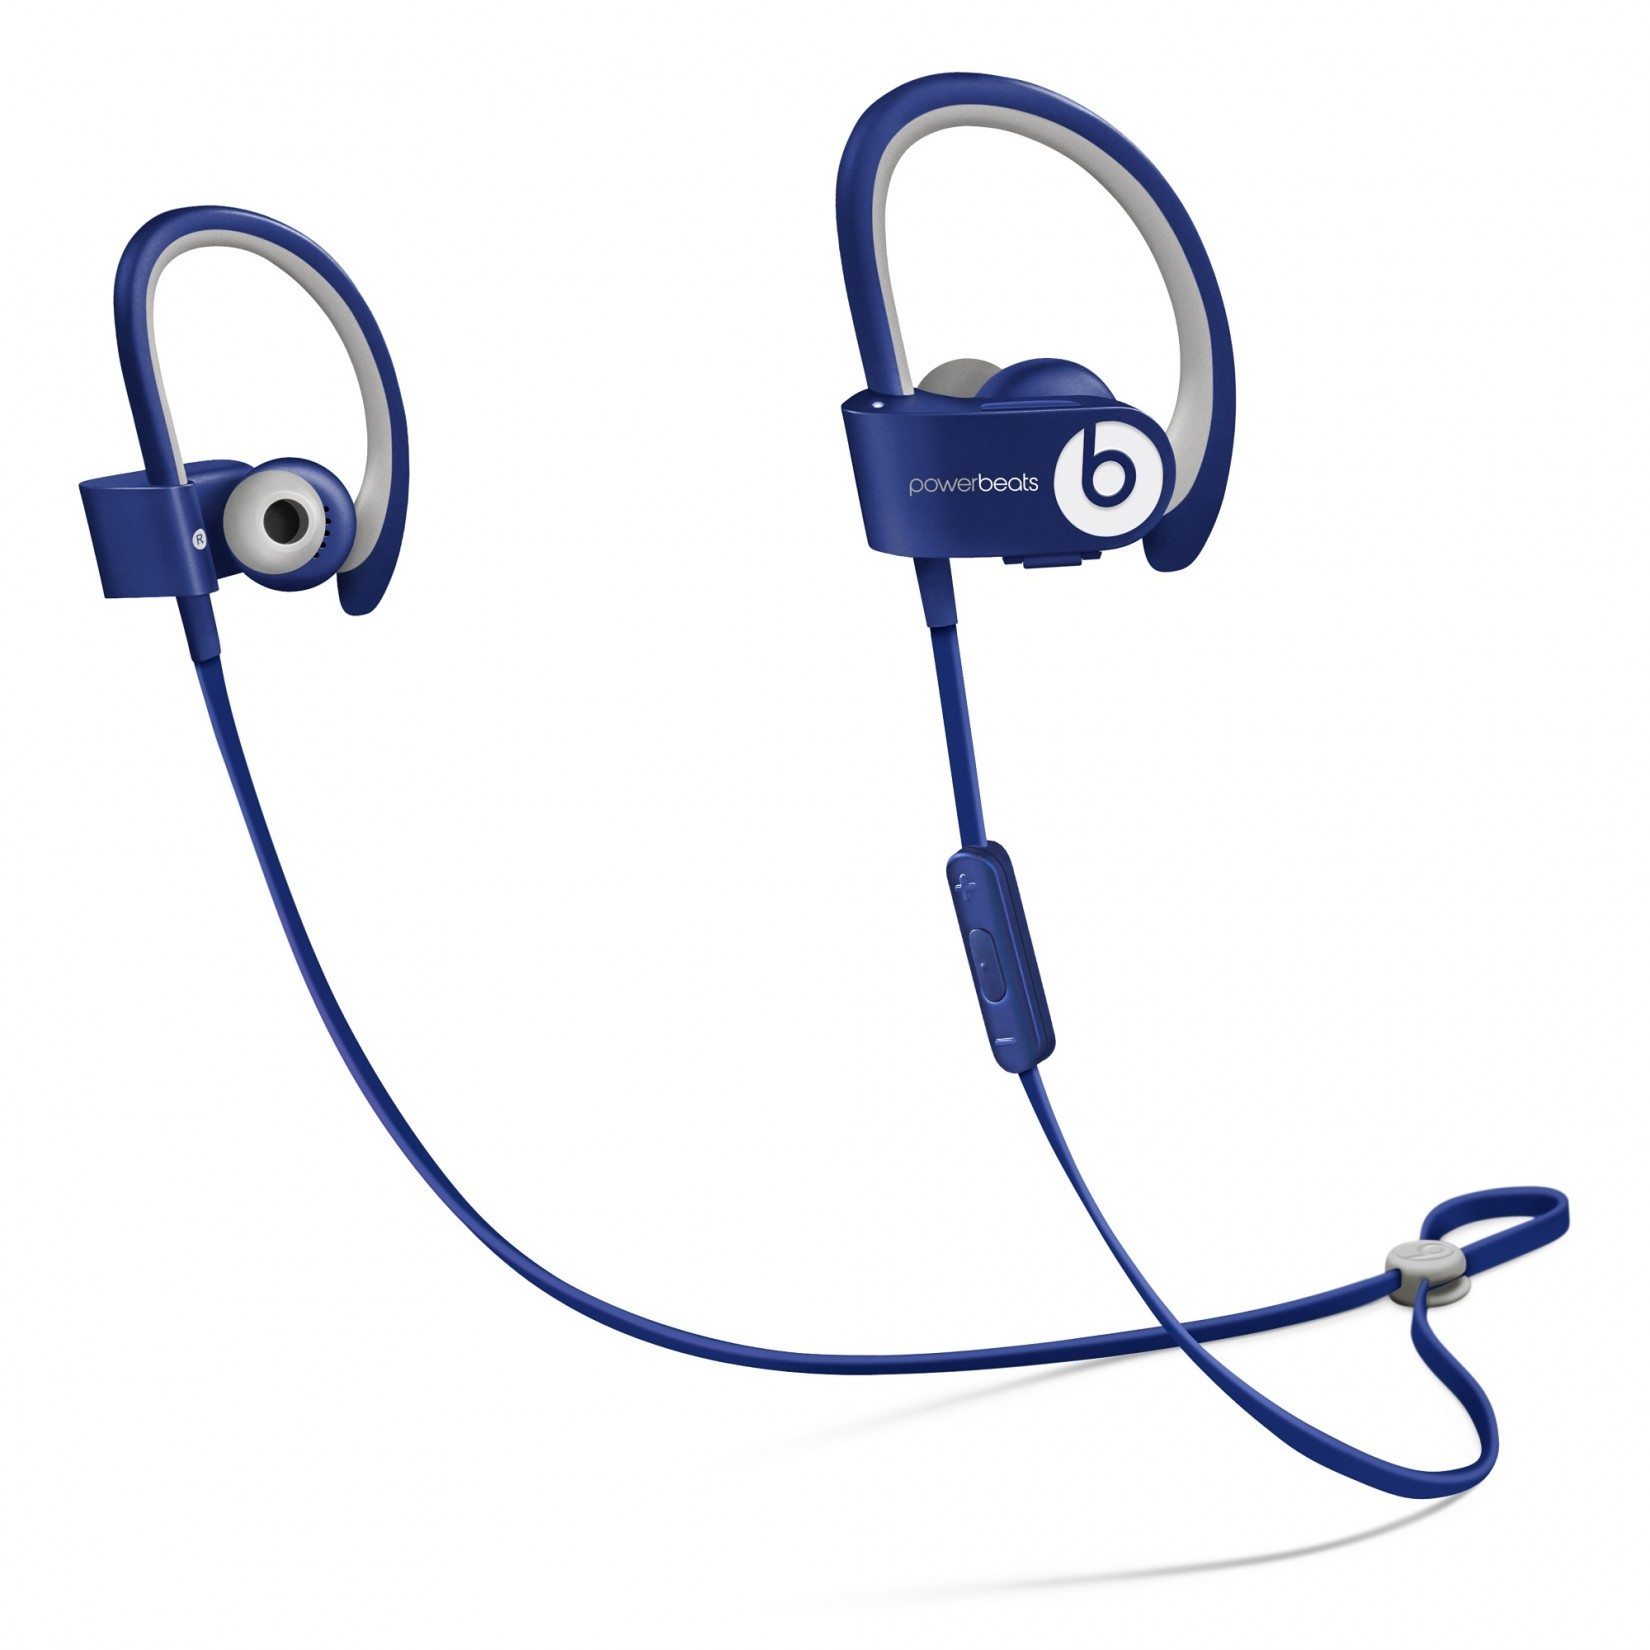 Active Beats Wireless Earbud Headphones Blue Wire Center Electronic Timing Circuit Get Domain Pictures Getdomainvidscom Powerbeats2 In Ear Rh Activebuzz Com Studio Review Denon Earbuds